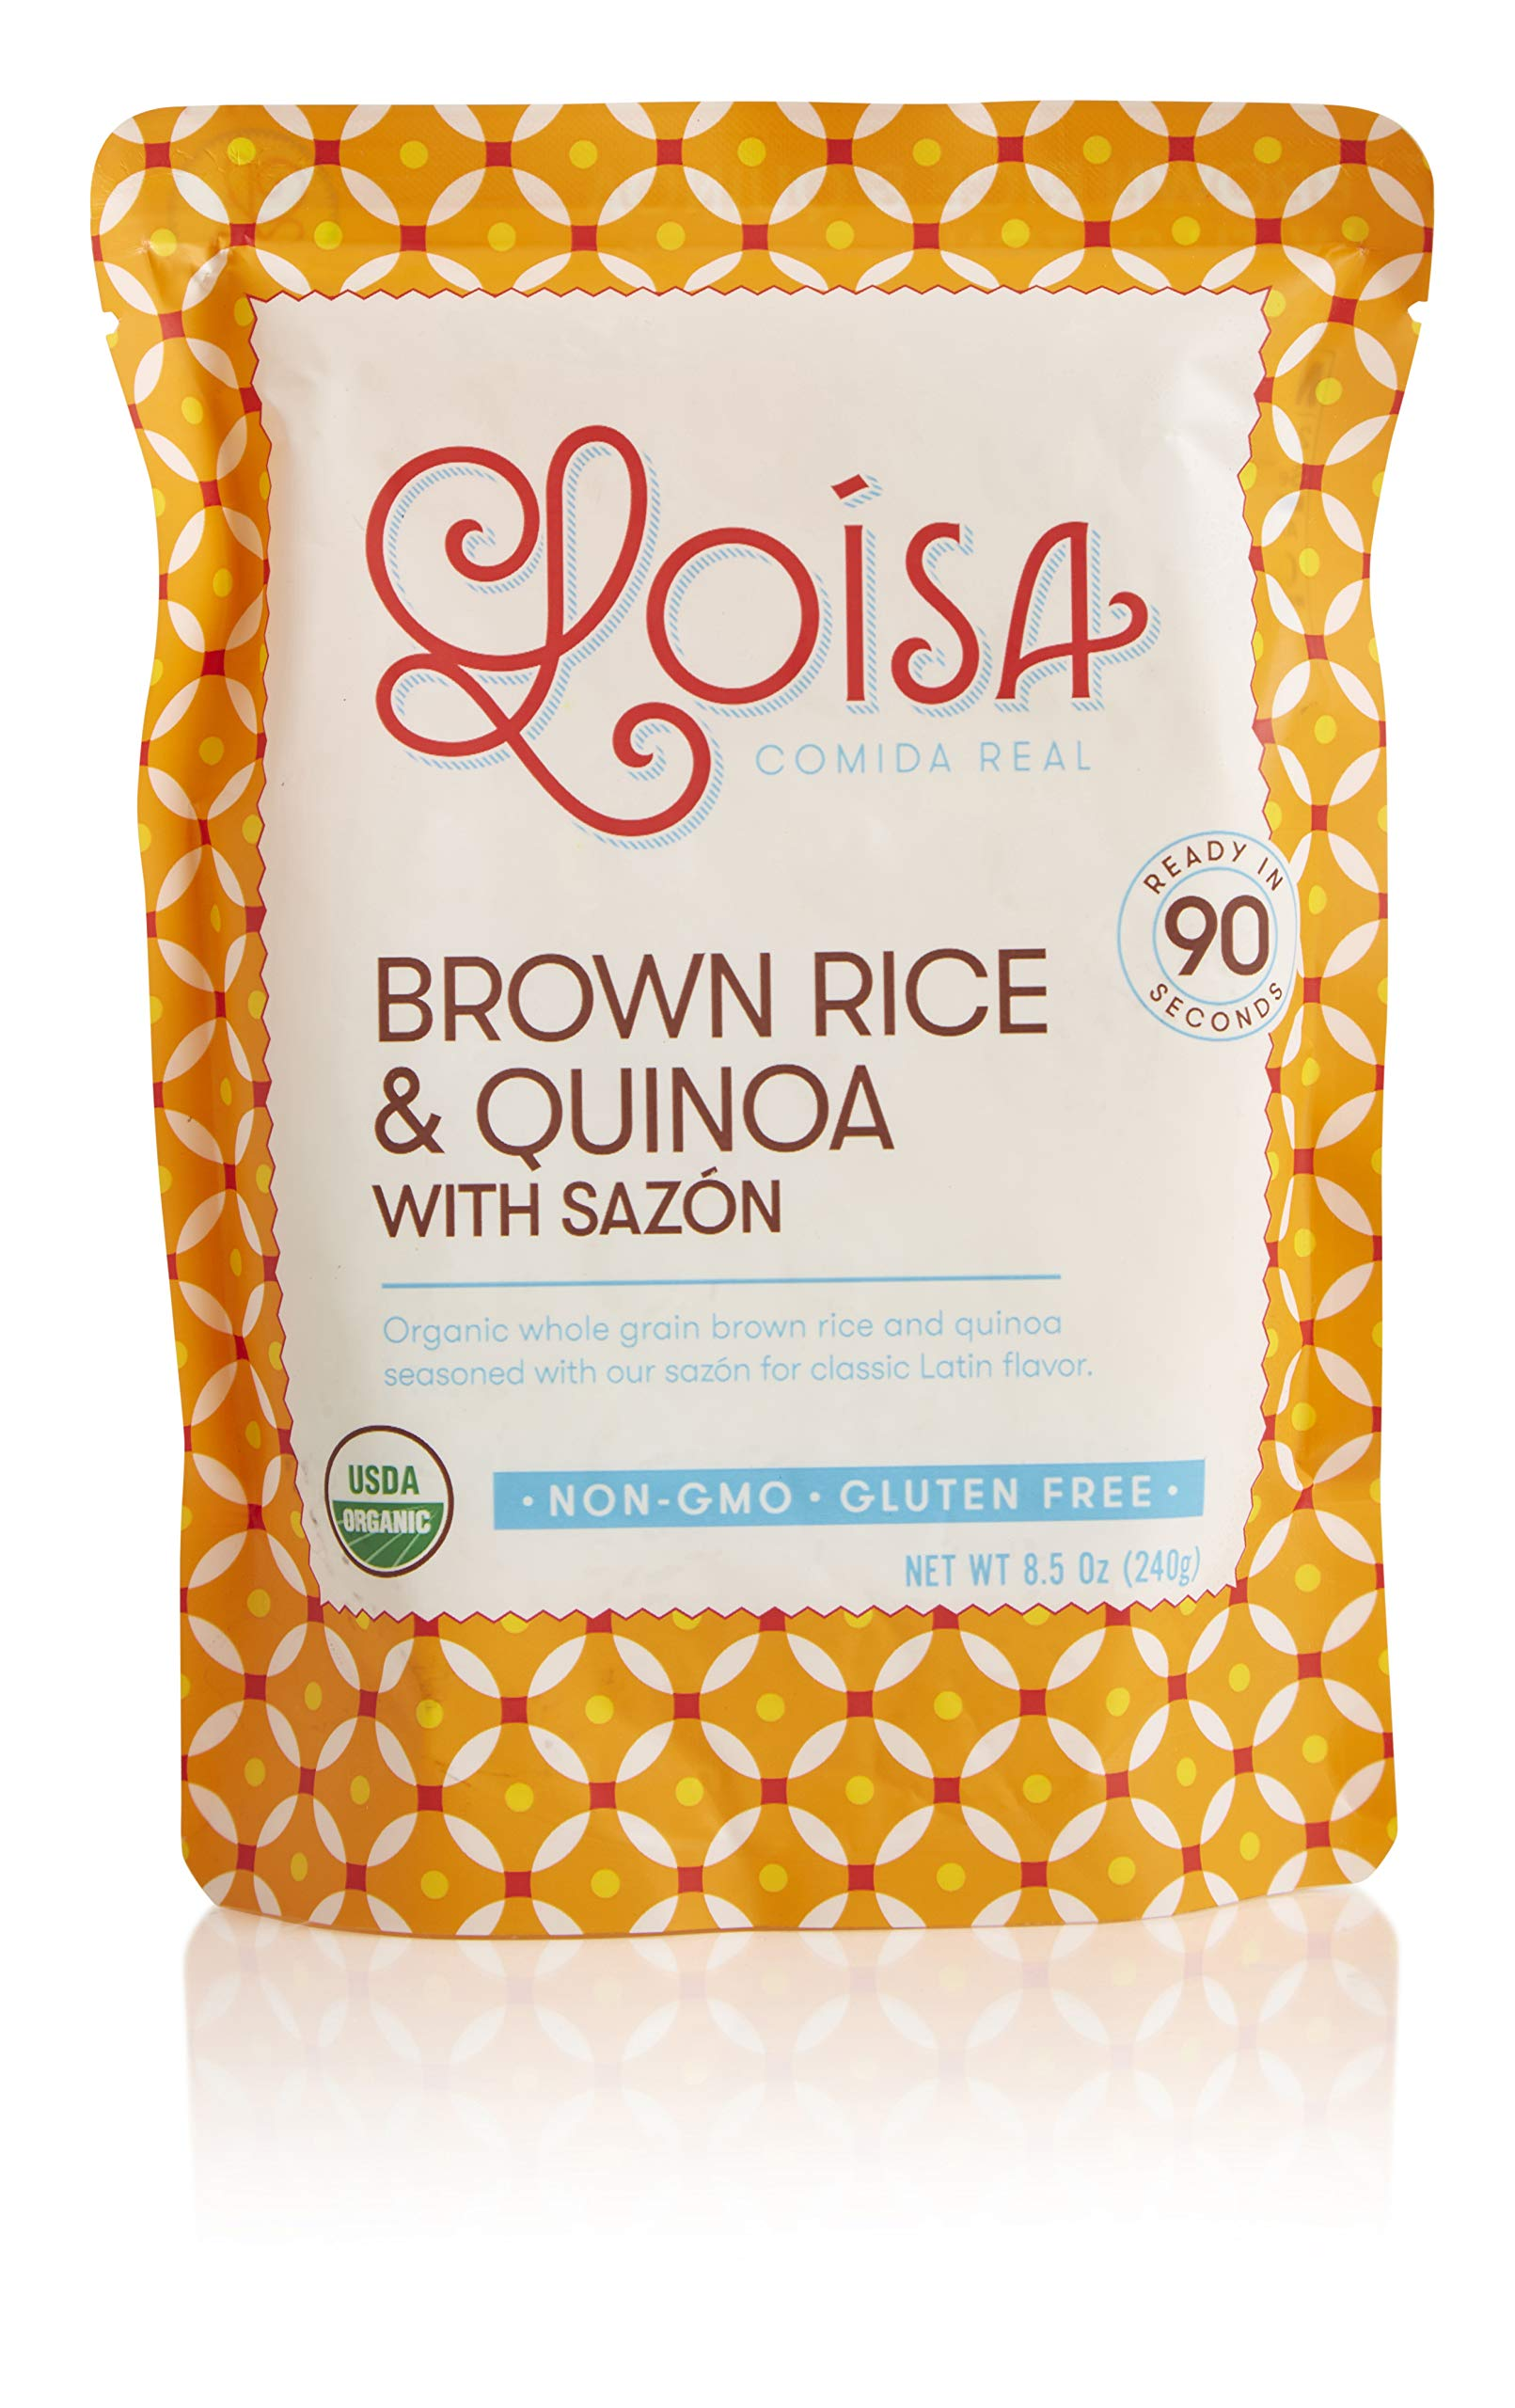 Loisa Organic Brown Rice & Quinoa with Sazon (3 Pack), Ready to Heat & Eat, USDA Organic, Non-GMO, Gluten-Free, Vegan, No Preservatives, No Artificial Flavors or Colors, BPA-Free Pouch, 8.5 Ounce